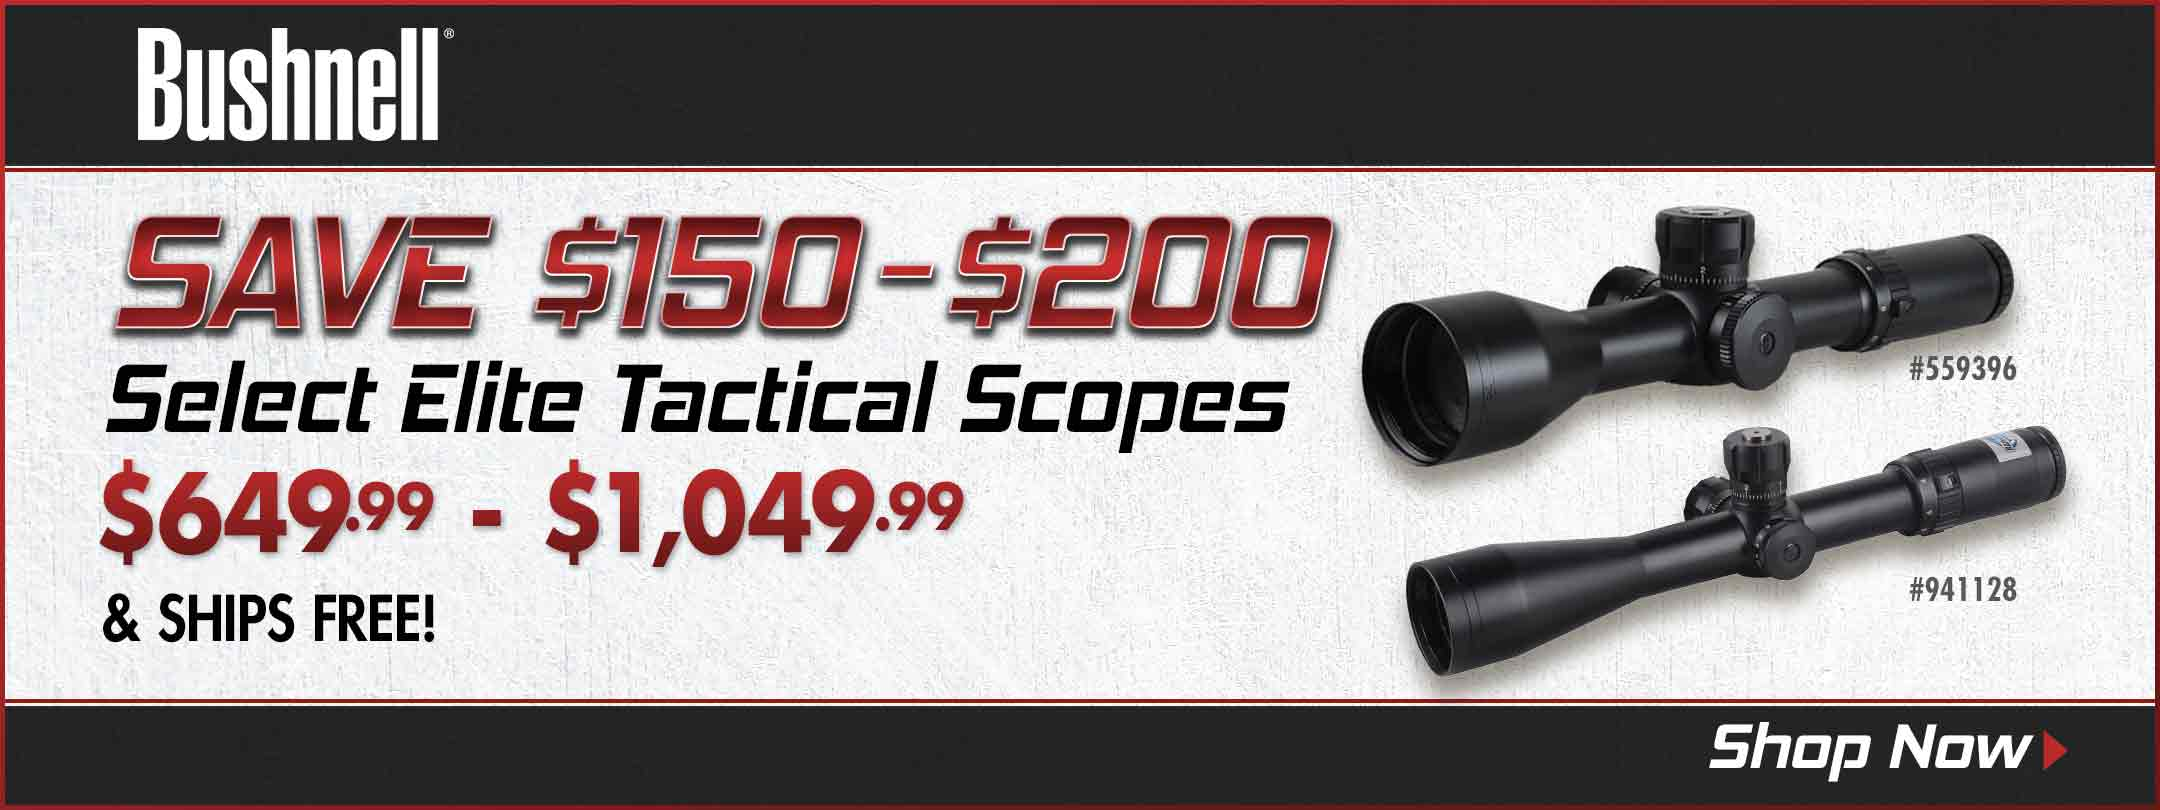 Save on Select Bushnell Elite Tactical Scopes